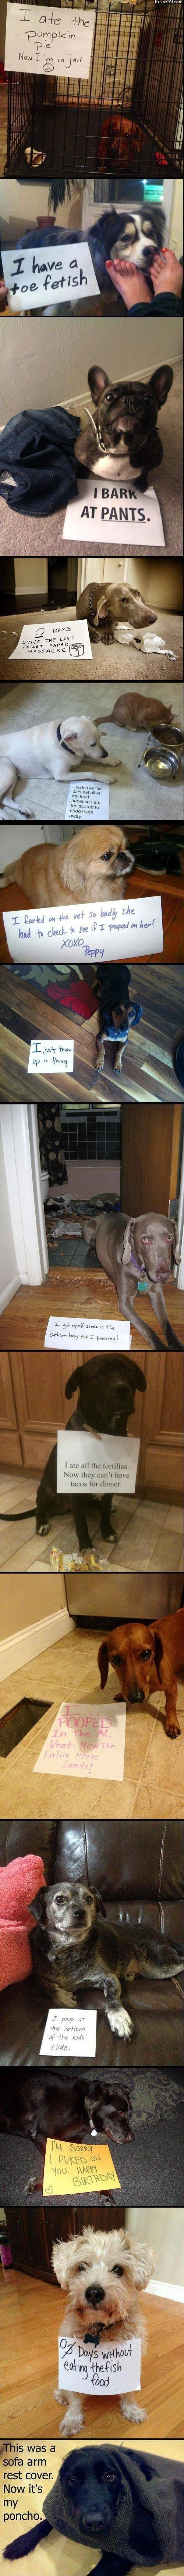 A bunch of dog shaming